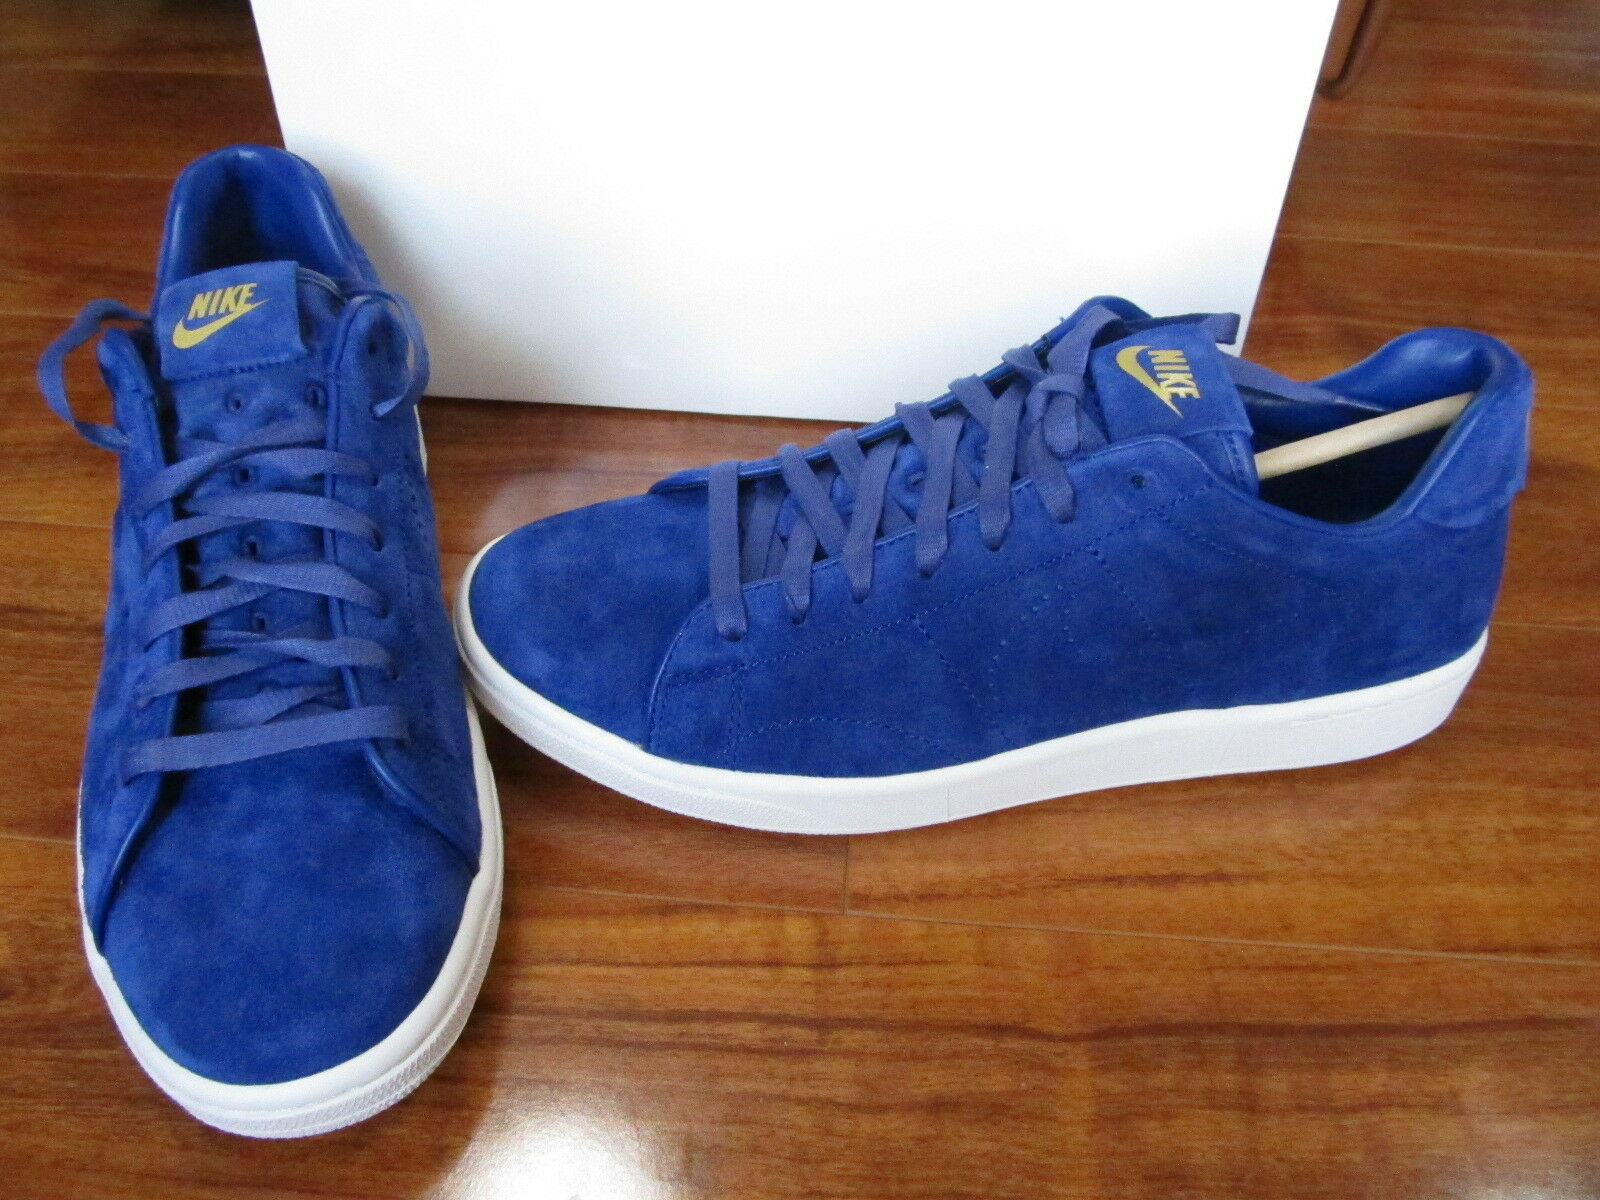 NEW NIKE TENNIS CLASSIC PDM SP SHOES MENS 10 BLUE SUEDE 621357 447 150